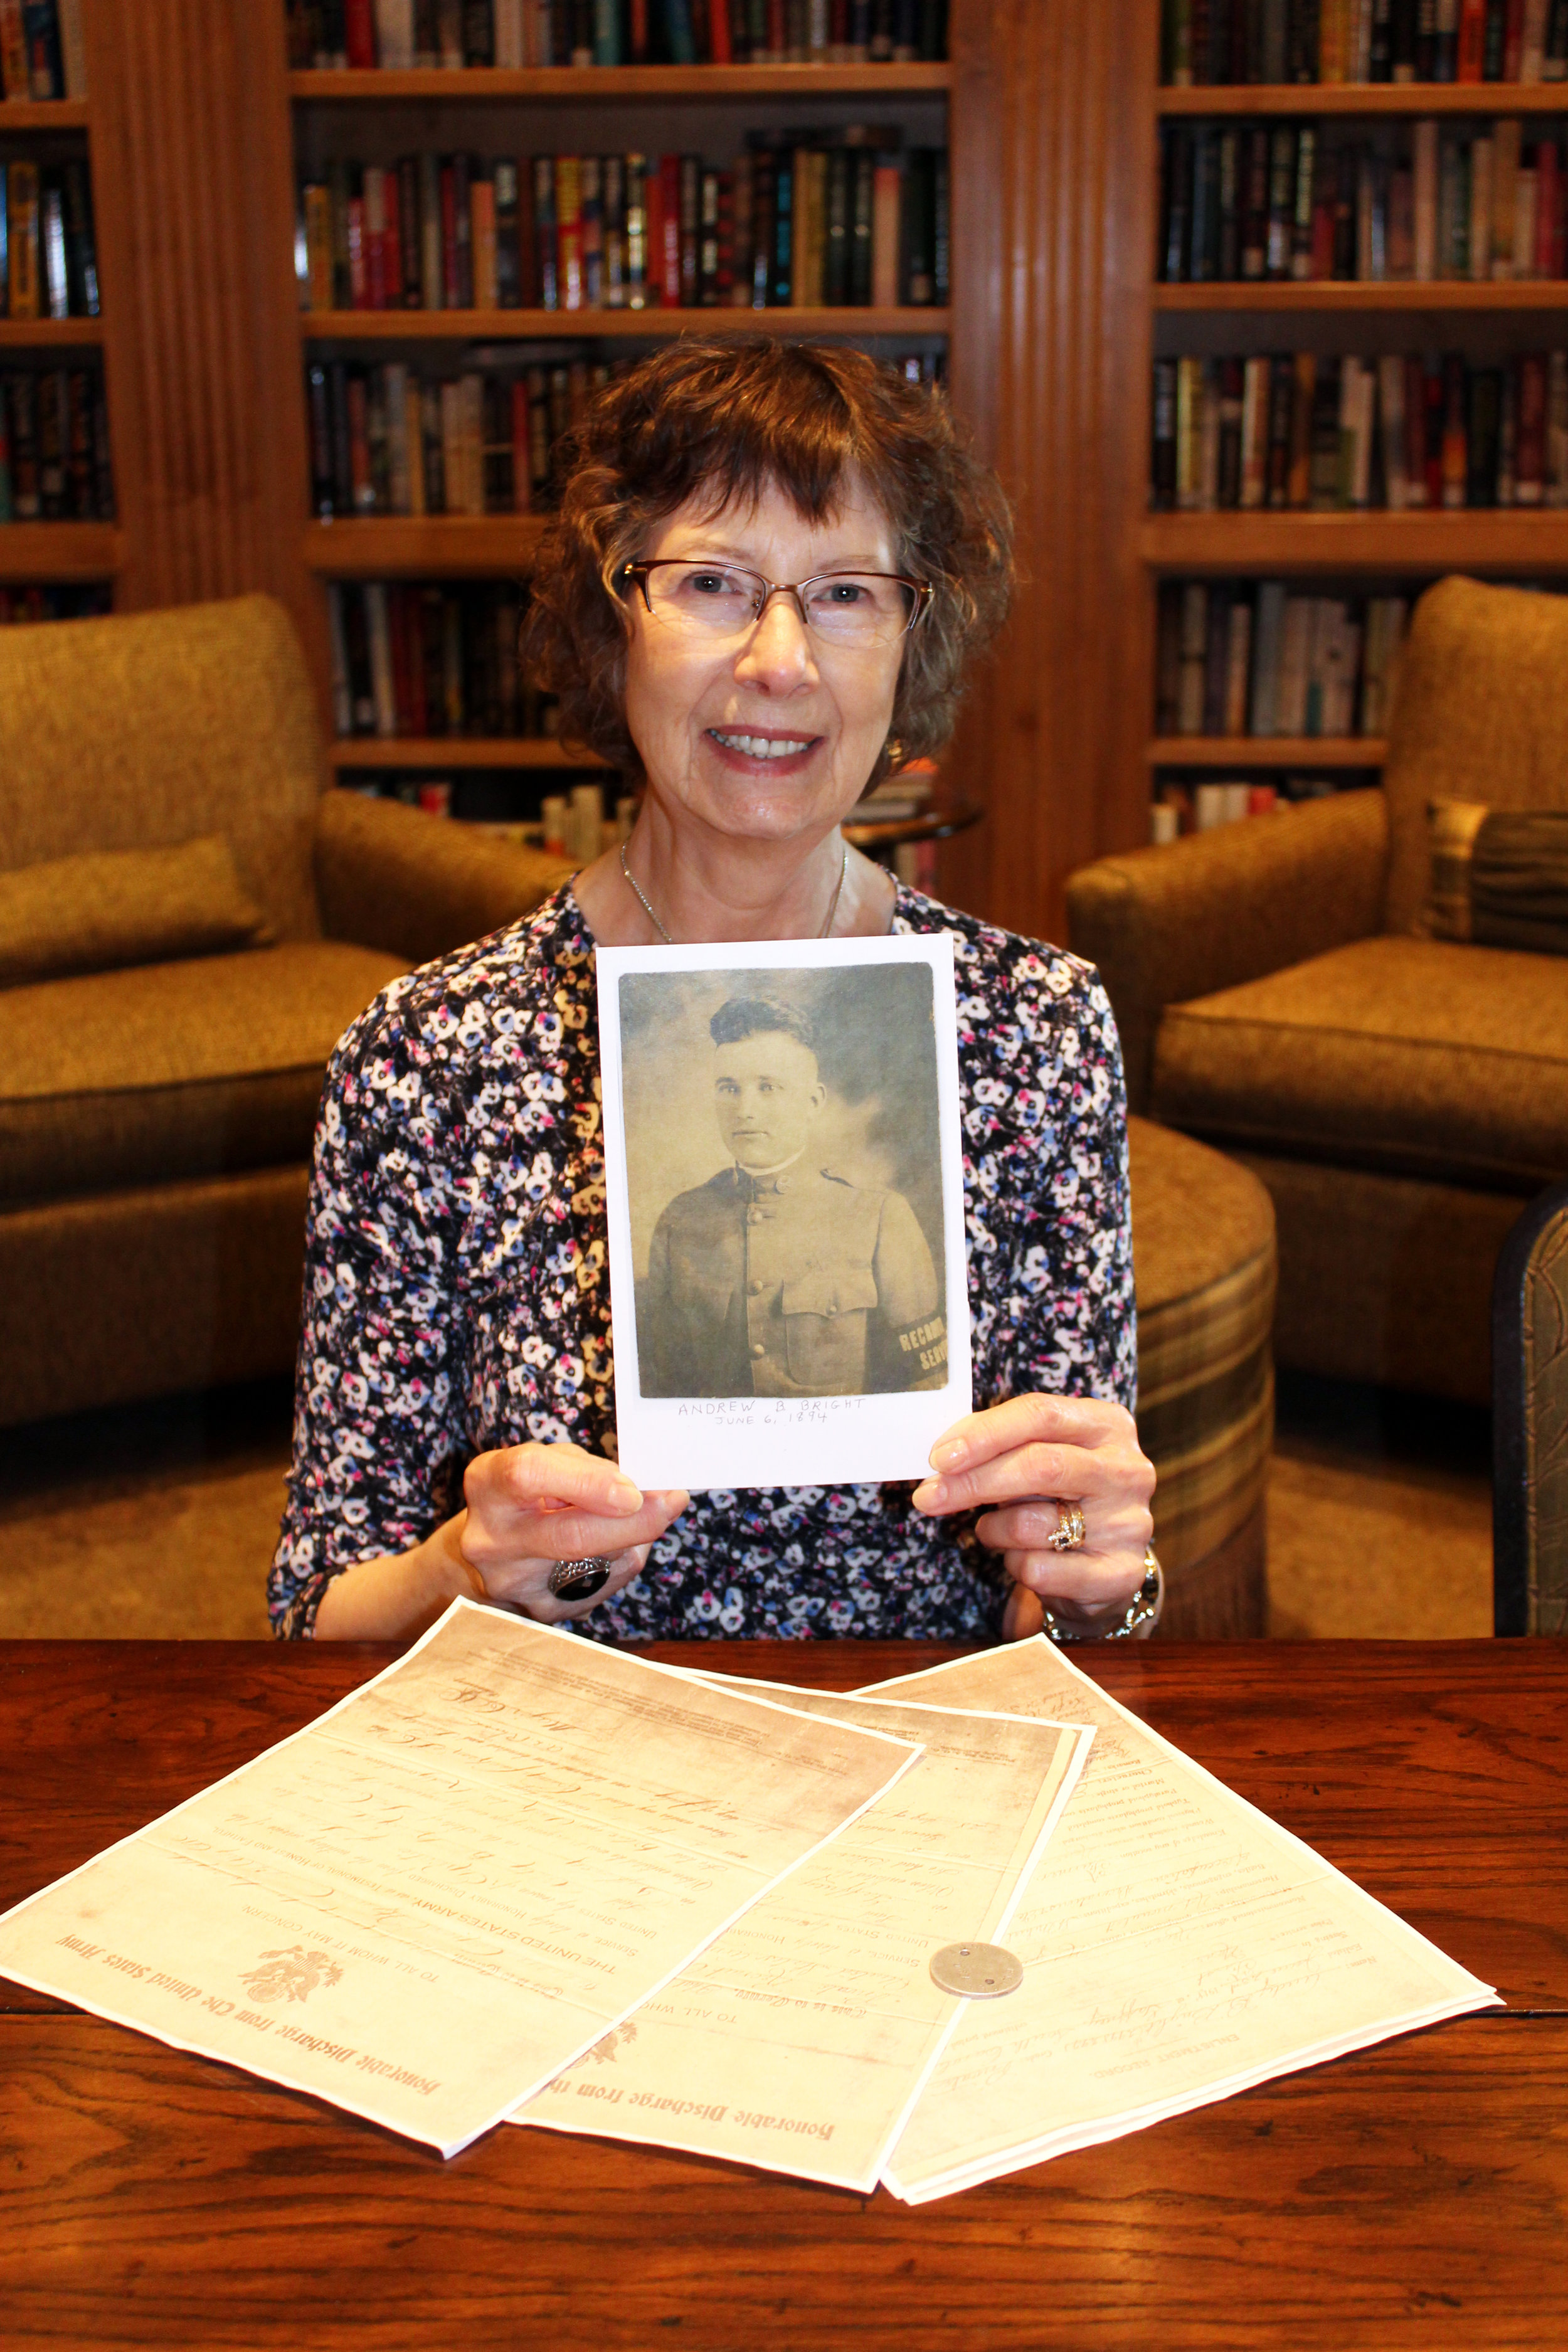 Maureen North shared memories of her father who fought in WWI.